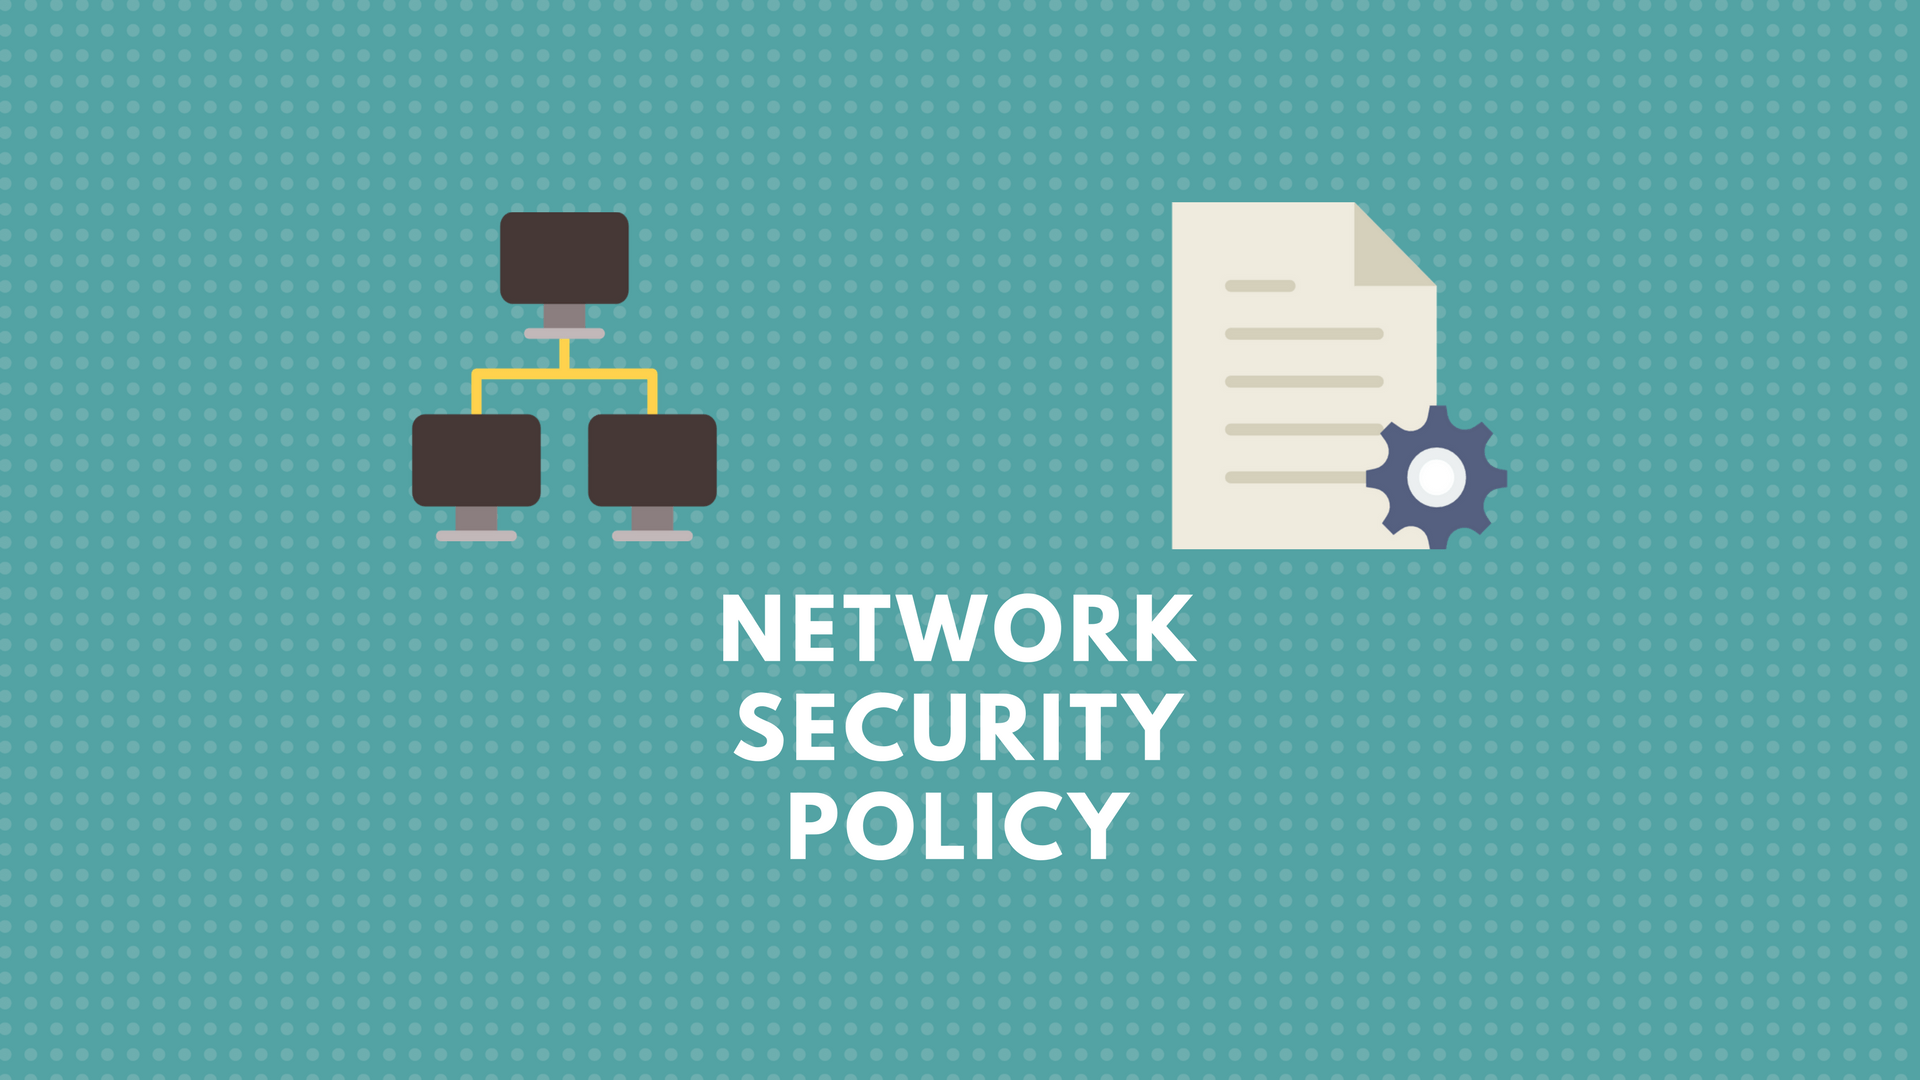 Creating a Network Security Policy